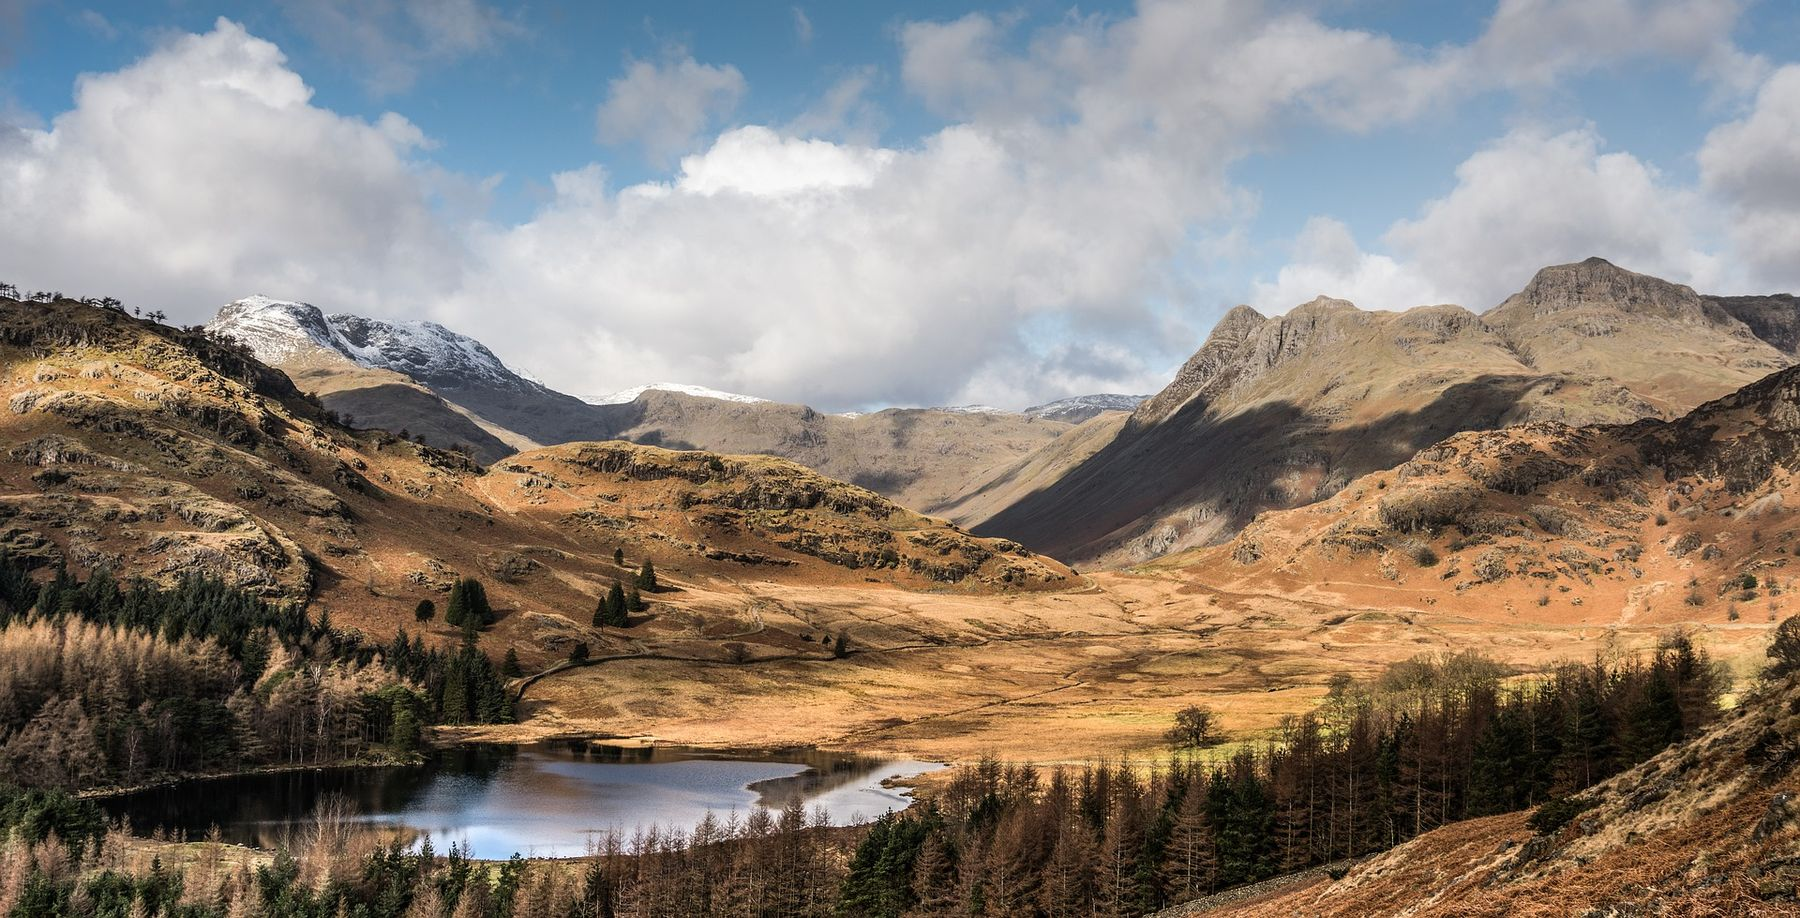 Blea Tarn, a remote country scene with mountains and sparse forest in the Lake District